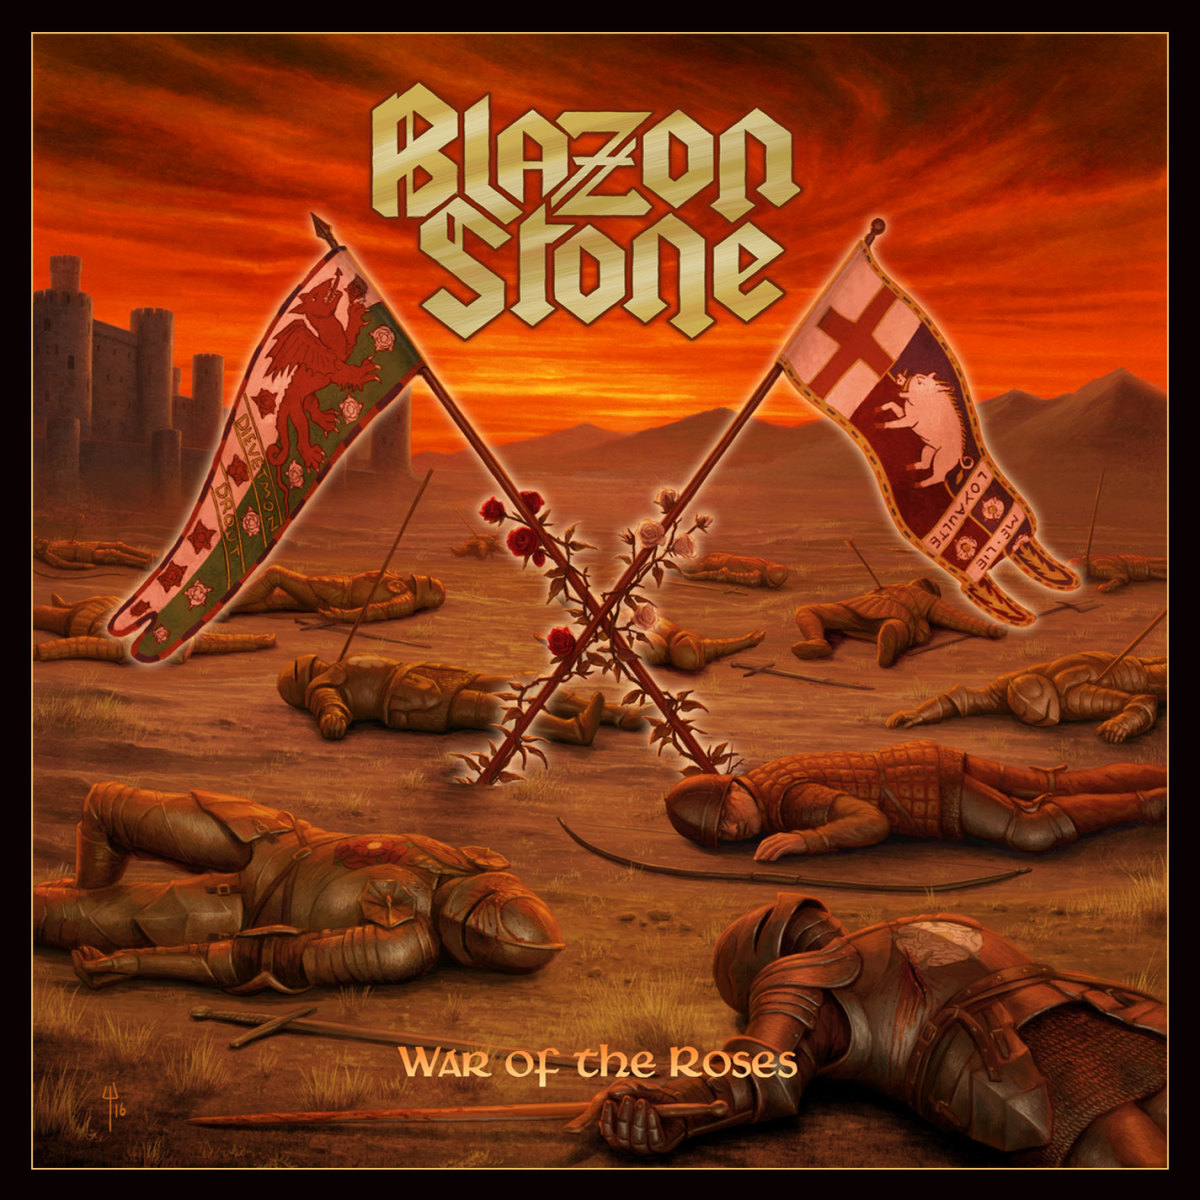 blazon-stone-war-of-the-rose-2016-album-review